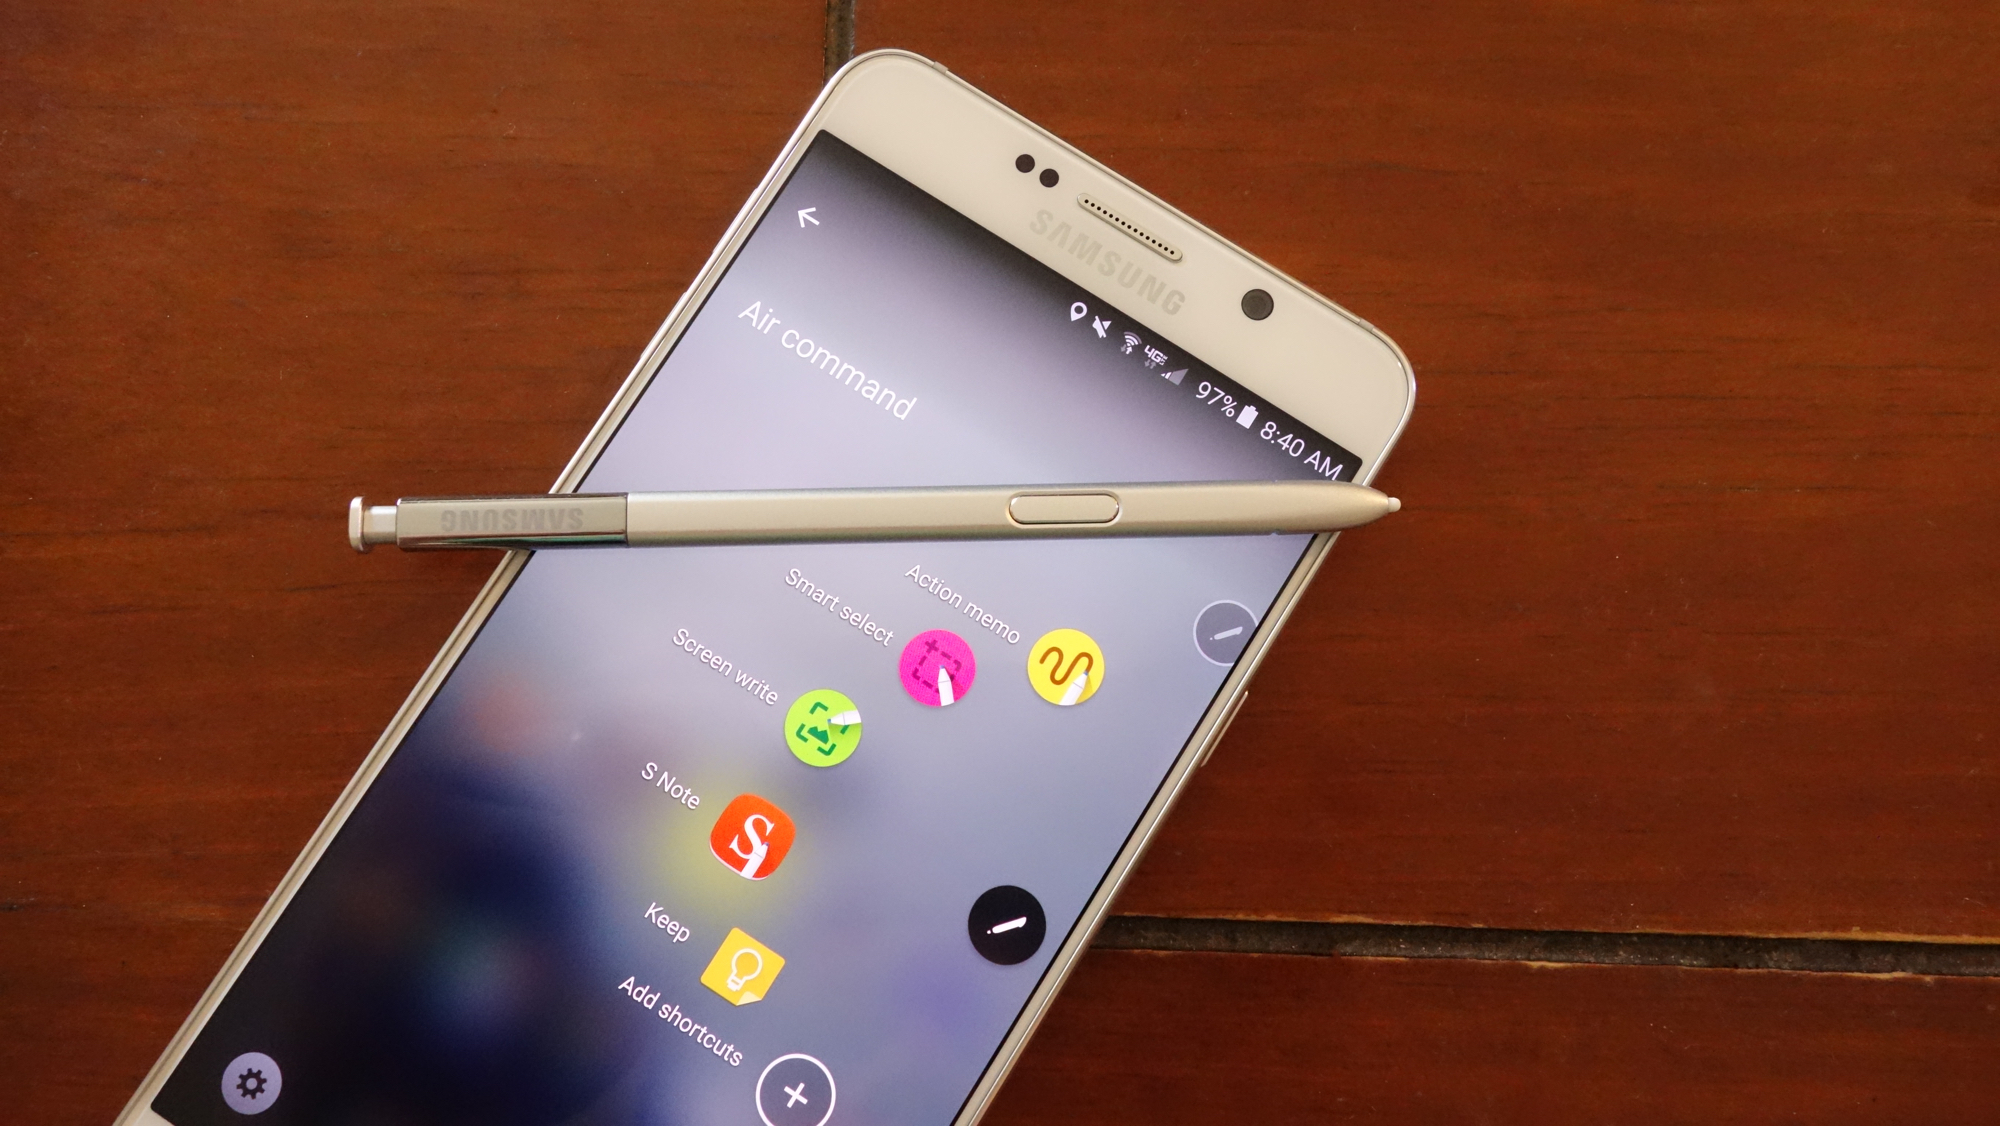 Samsung Galaxy Note5 with S-pen